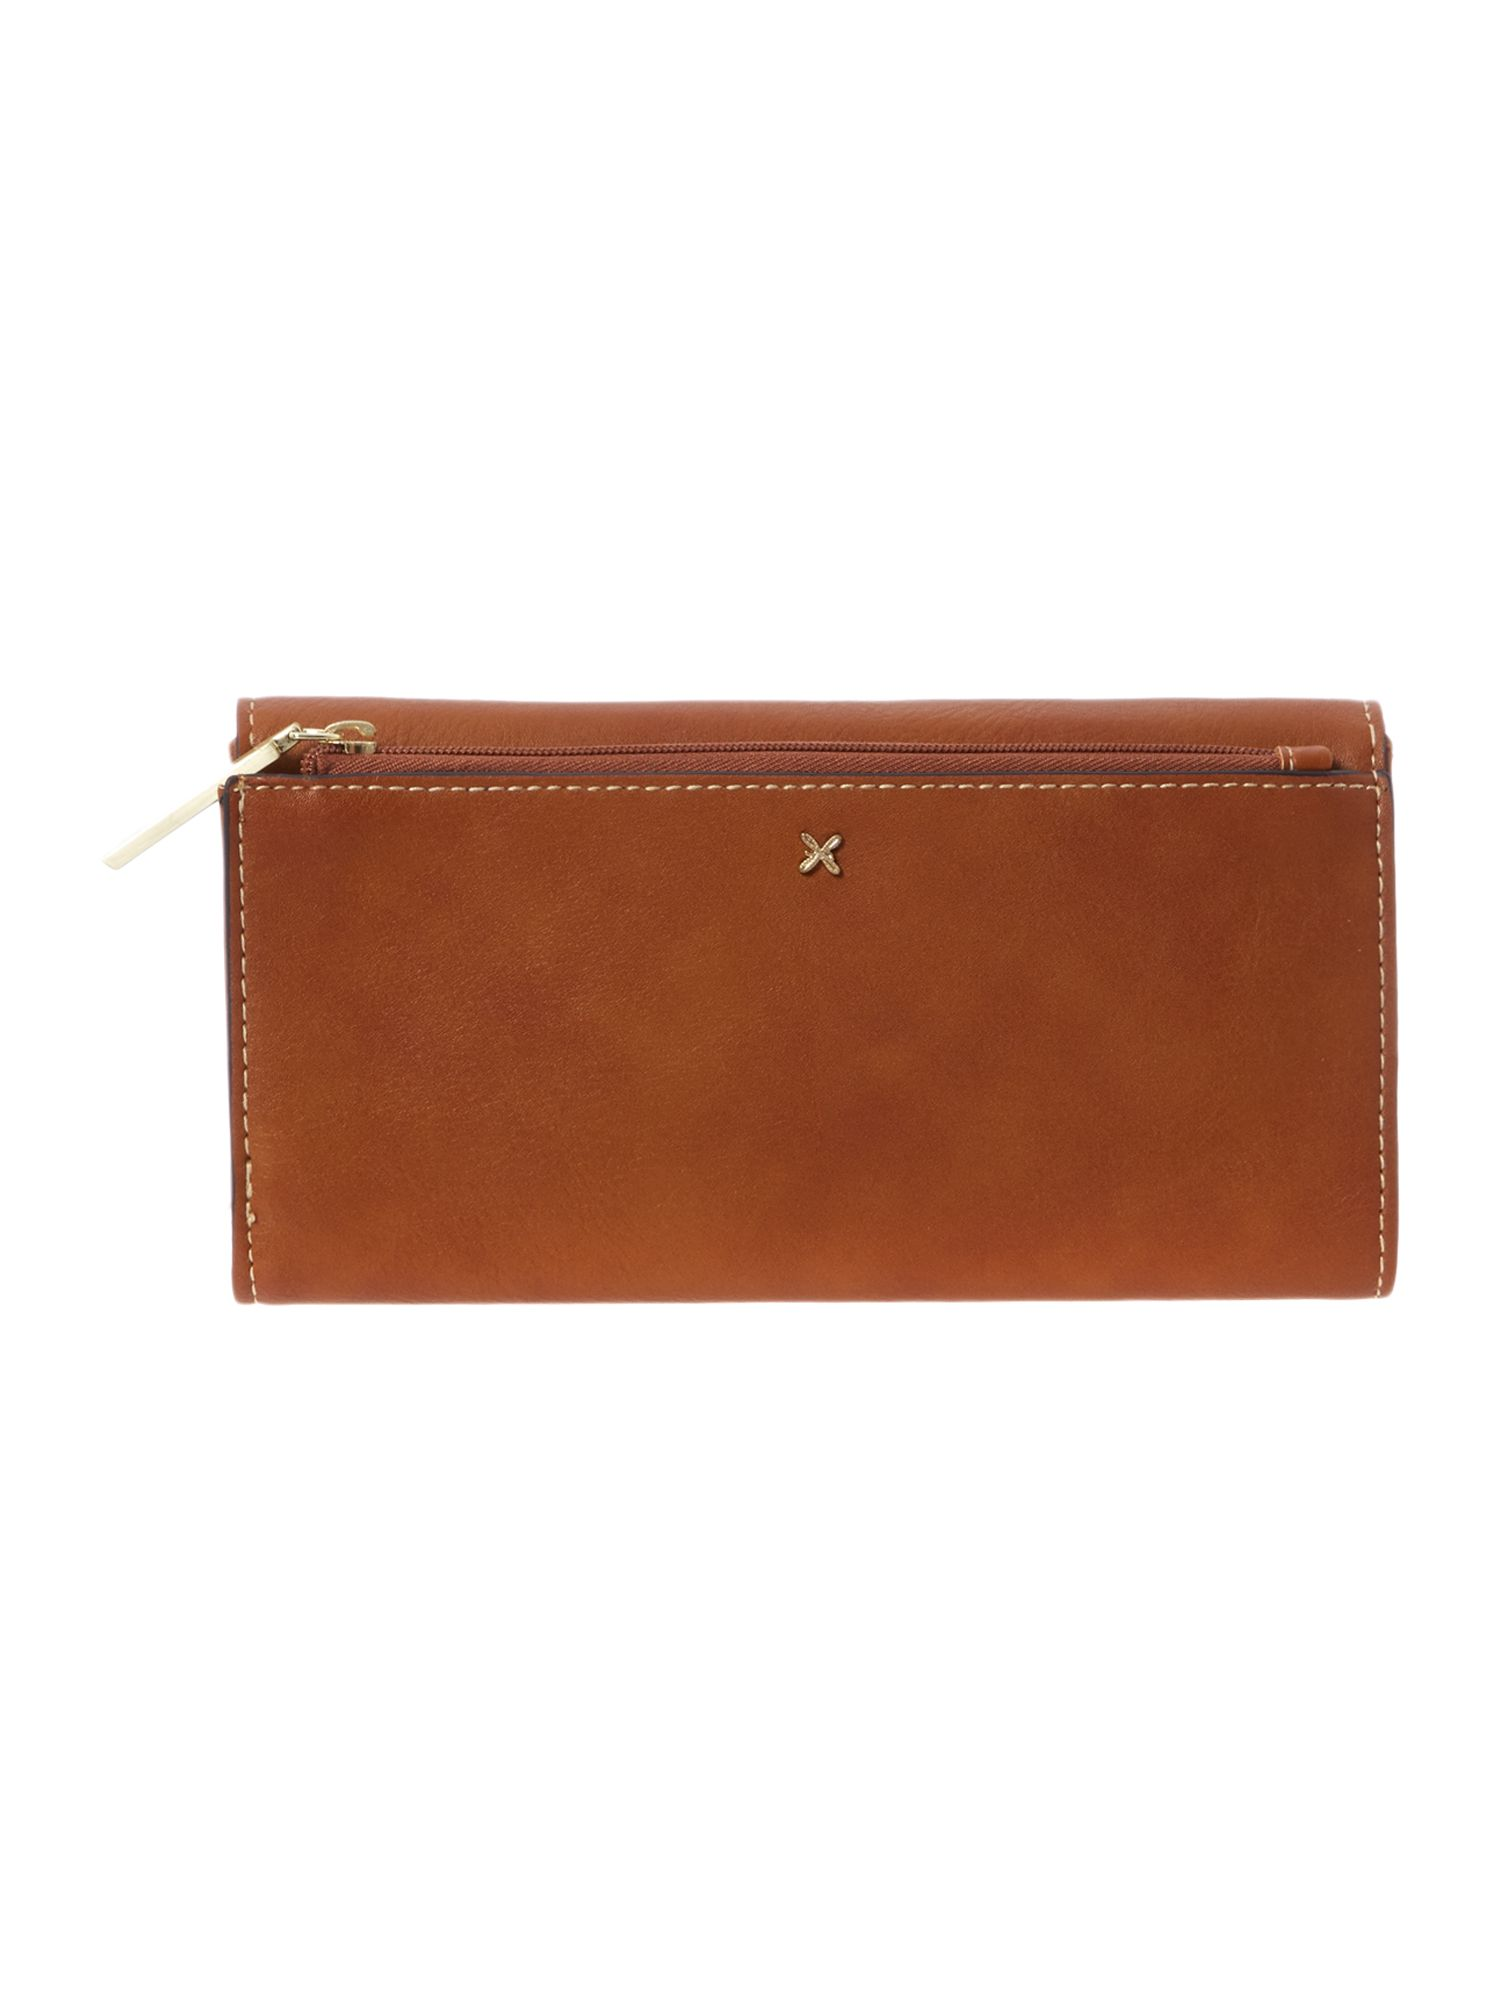 Sadie tan large flapover purse